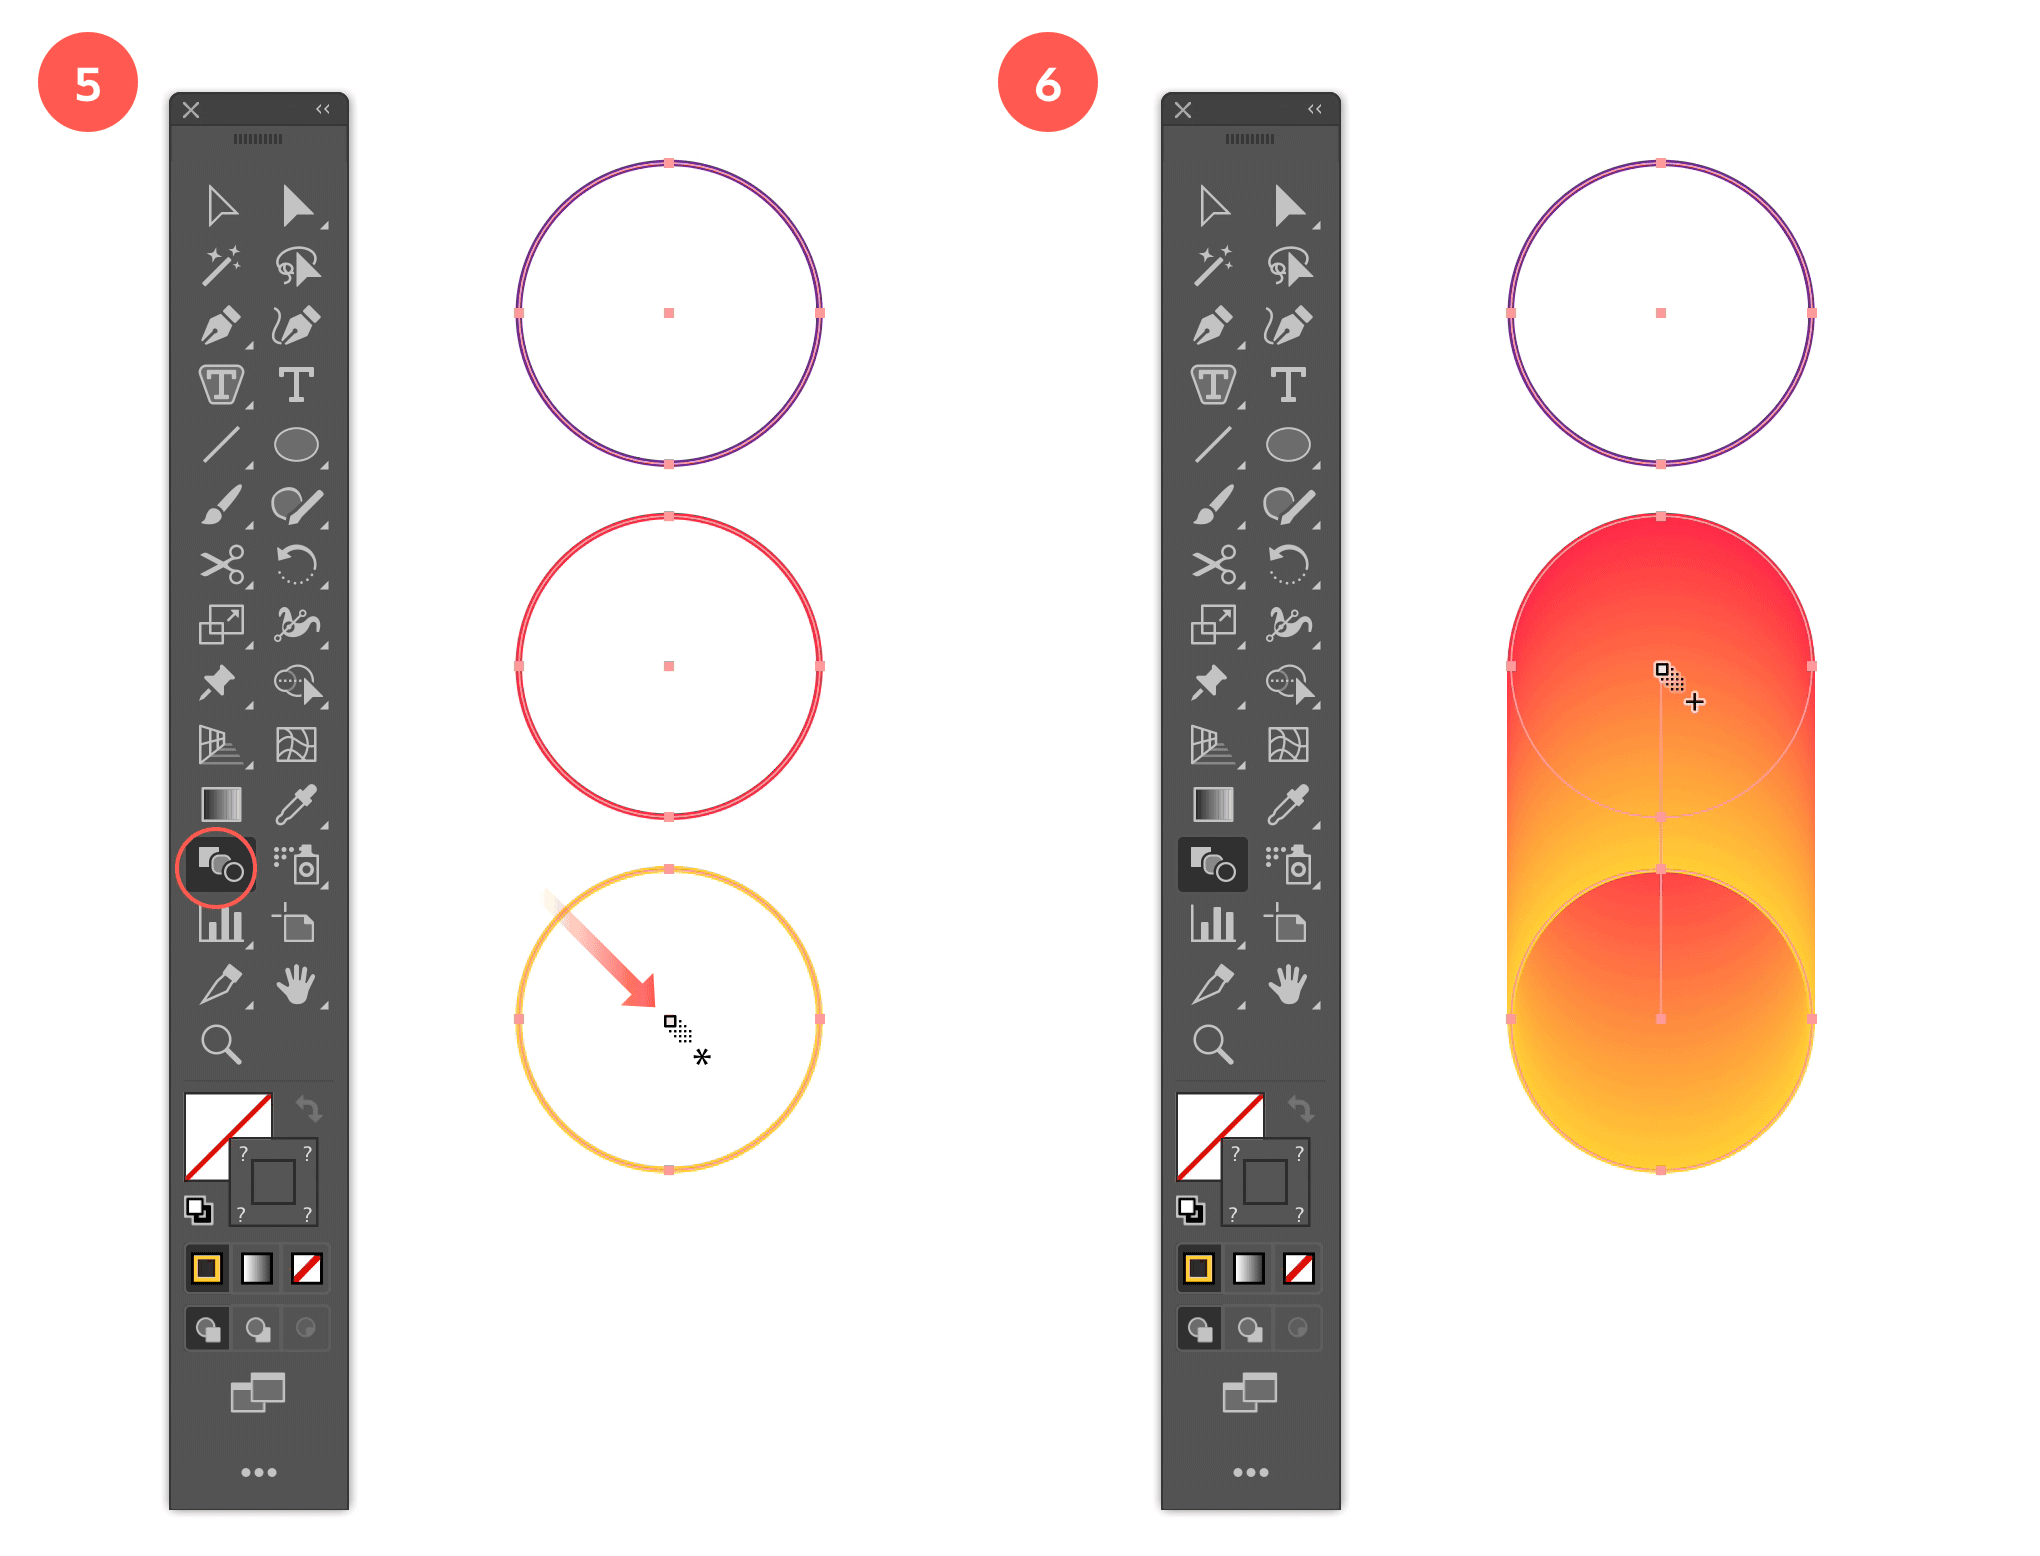 Step 5: Blend the 3rd Circle with the 2nd Circle  - Step 6: Create the Blending Between the 3rd and 2nd Circle